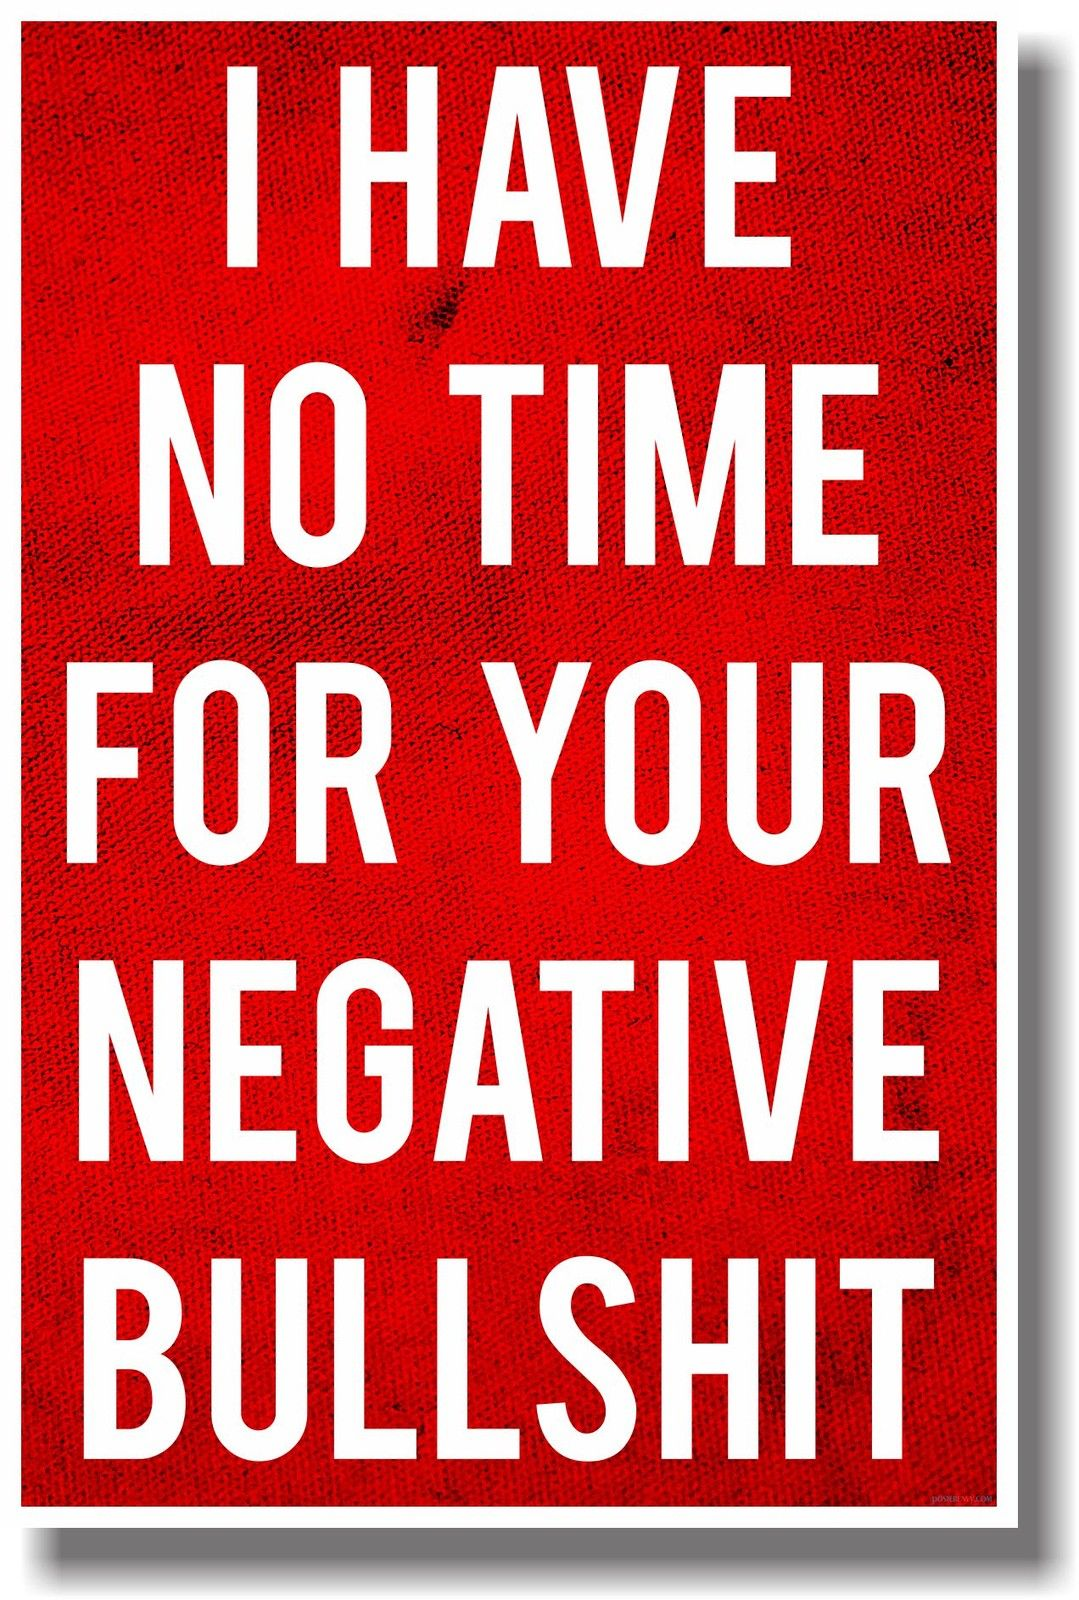 I Have No Time For Your Negative Bullshit Sticker Free CDR Vectors Art